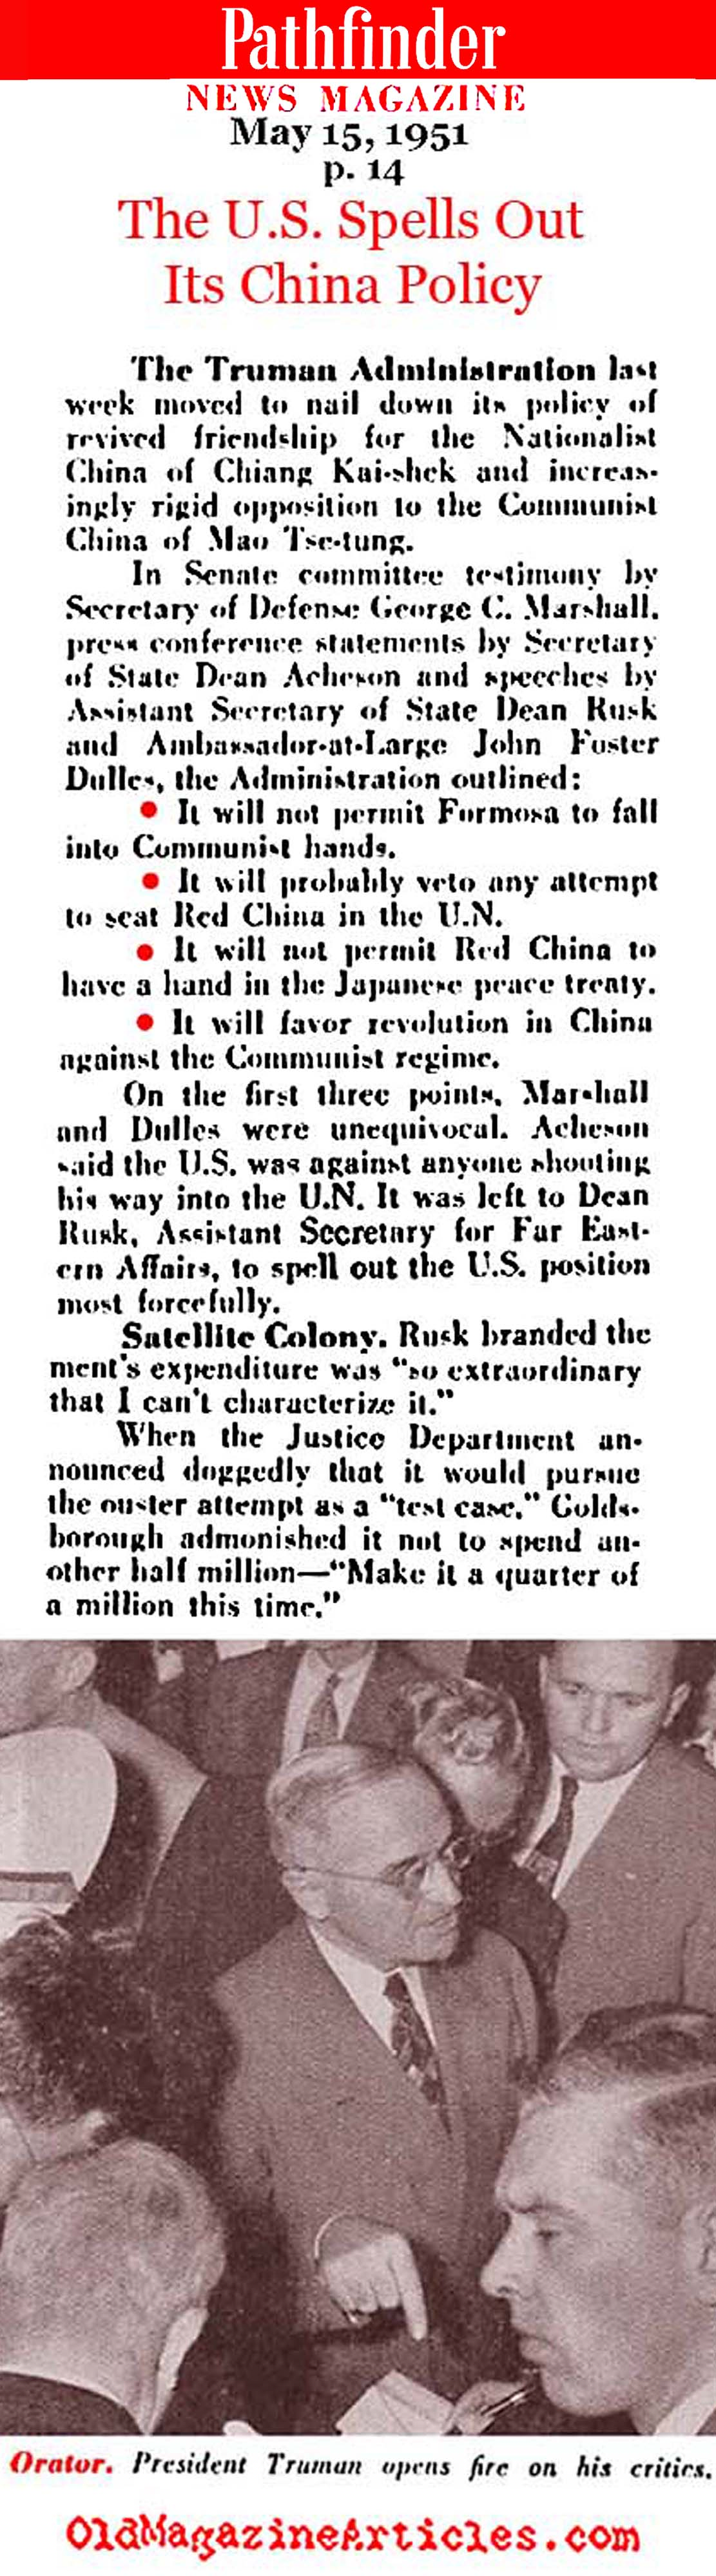 Truman's China Policy for 1951 (Pathfinder Magazine, 1951)